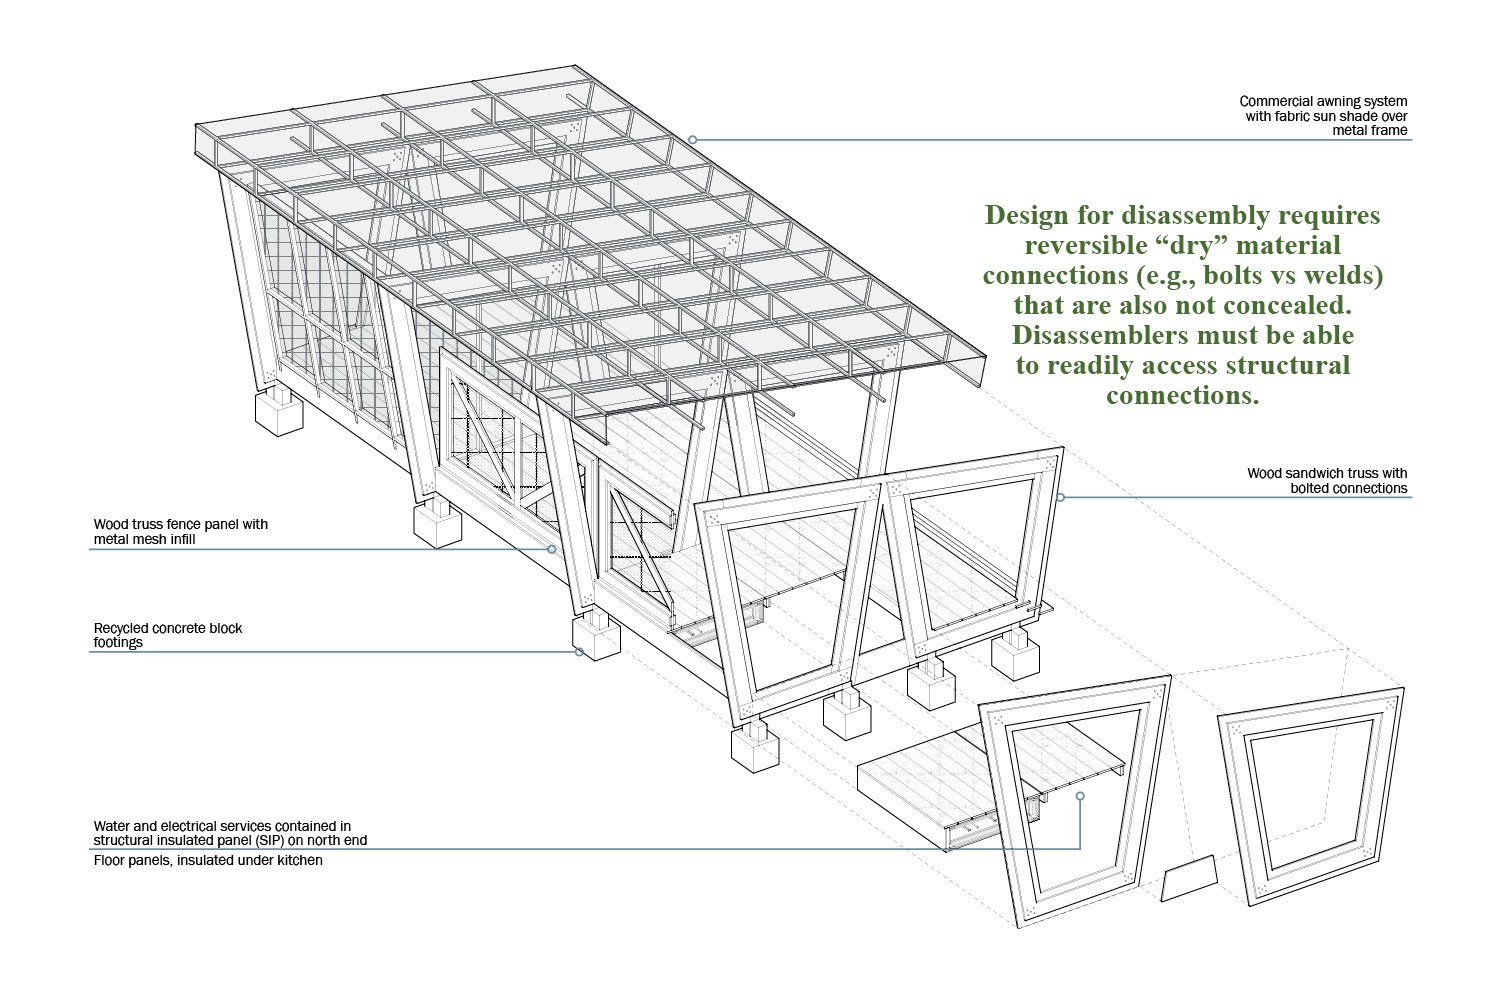 """Design for disassembly requires reversible """"dry"""" material connections (e.g., bolts vs welds) that are also not concealed. Disassemblers must be able to readily access structural connections. University of Arkansas Community Design Center}"""